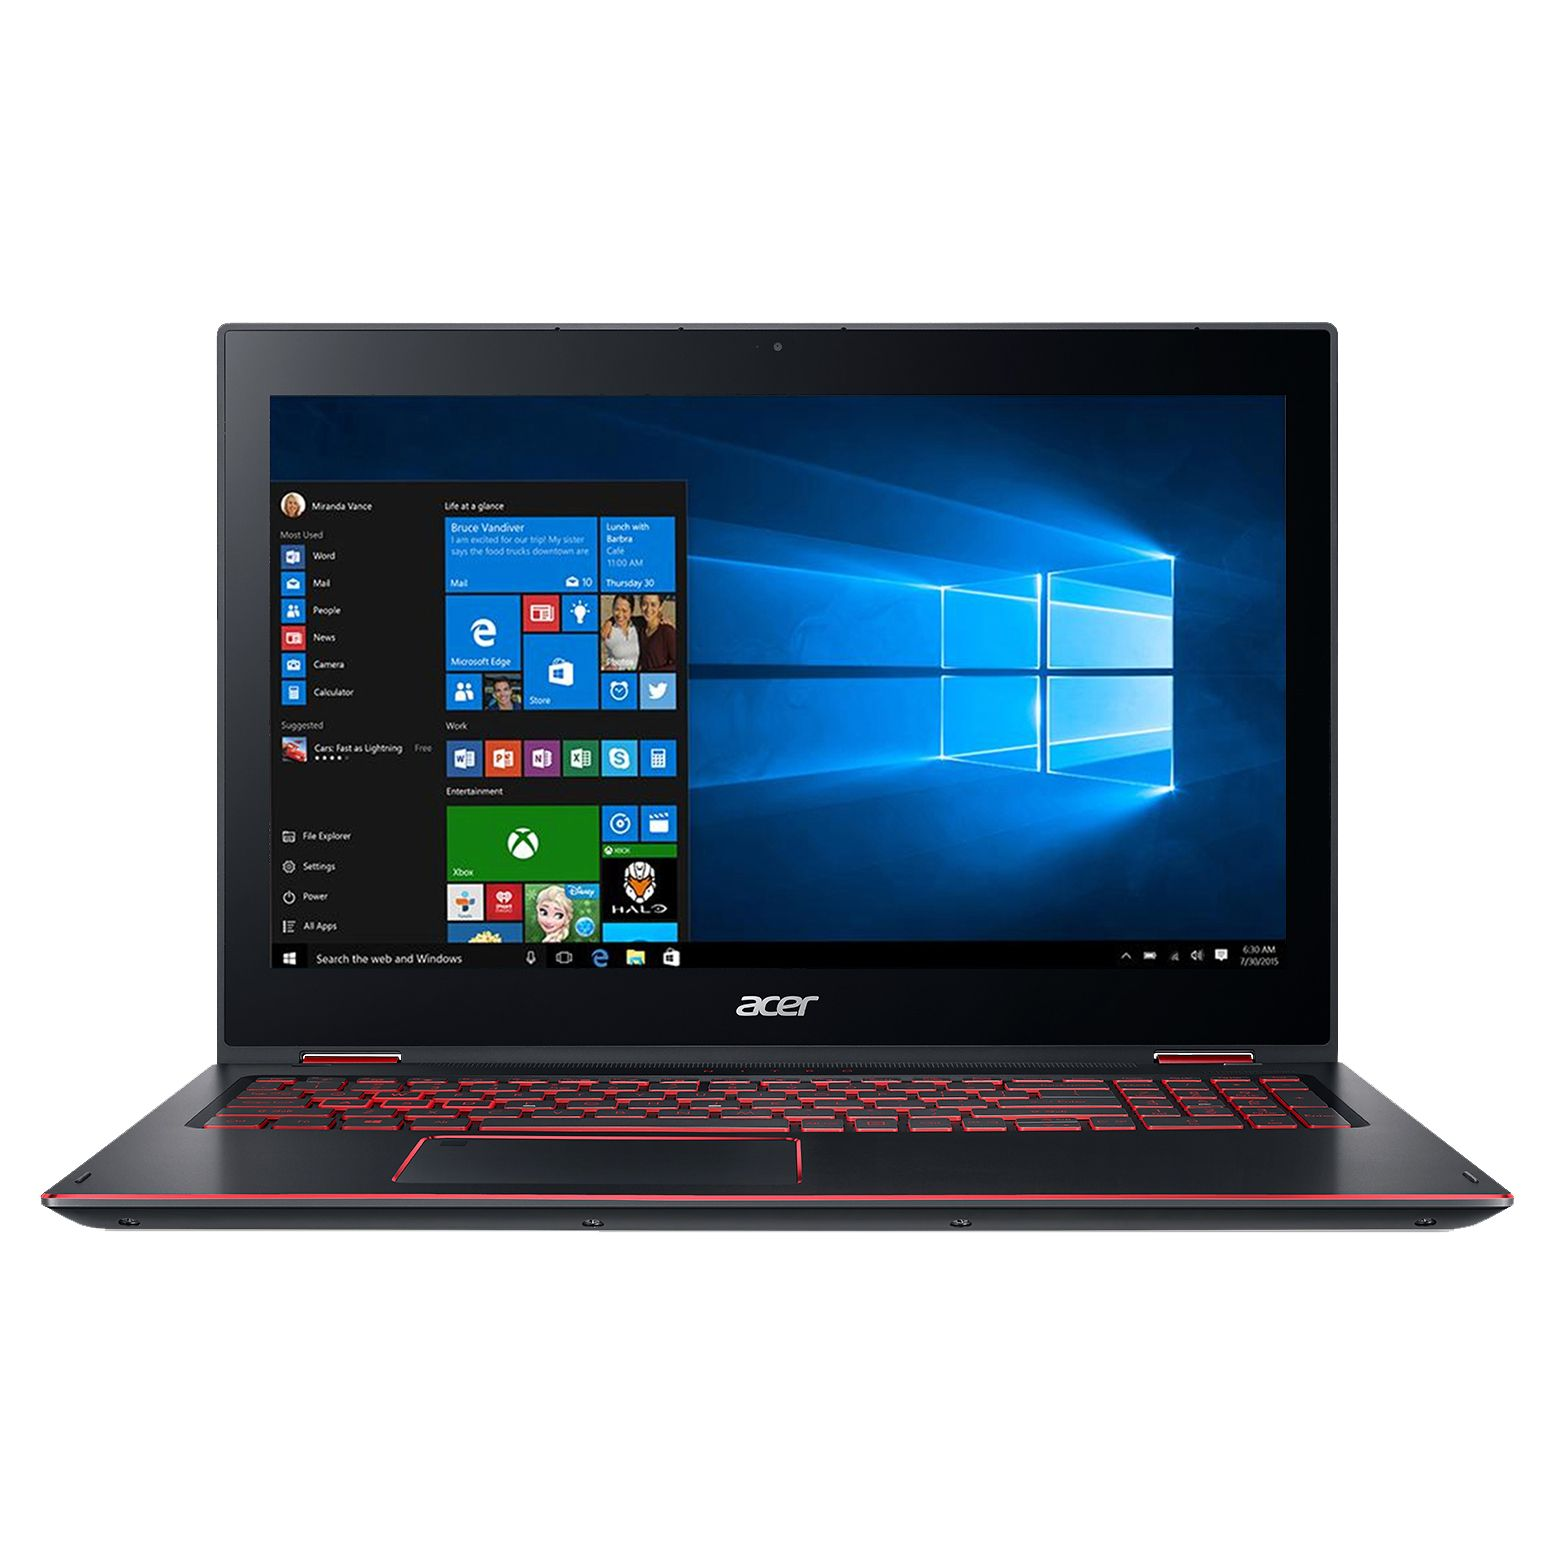 Notebook Acer Nitro Spin 5 NP515-51 15.6 Full HD Touch Intel Core i7-8550U GTX 1050-4GB RAM 8GB SSD 256GB Windows 10 Home Negru